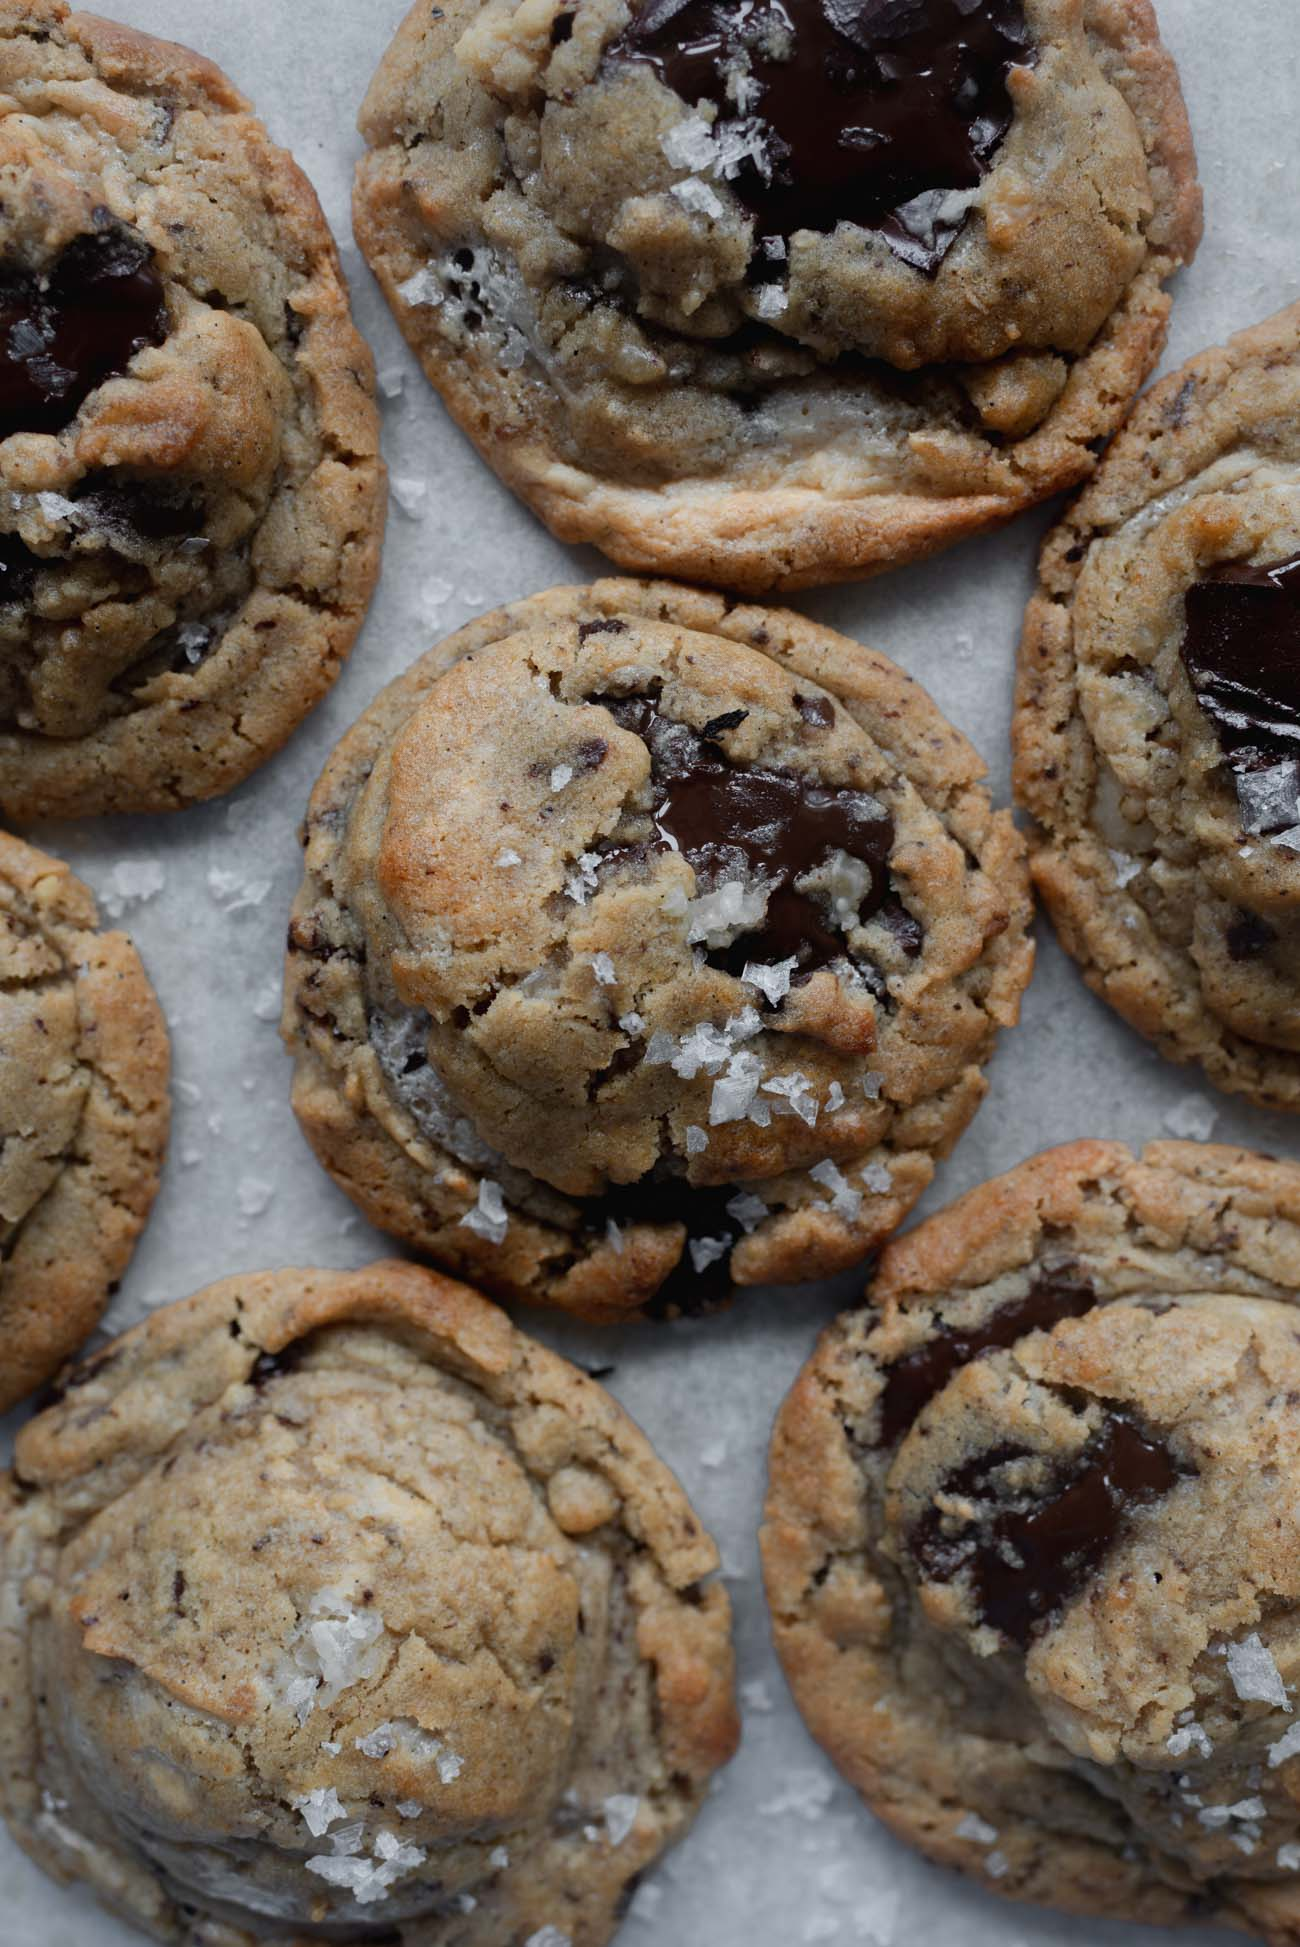 Halvah-Burnt-Butter-and-Walnut-Chocolate-Chunk-Cookies-7-of-14.jpg